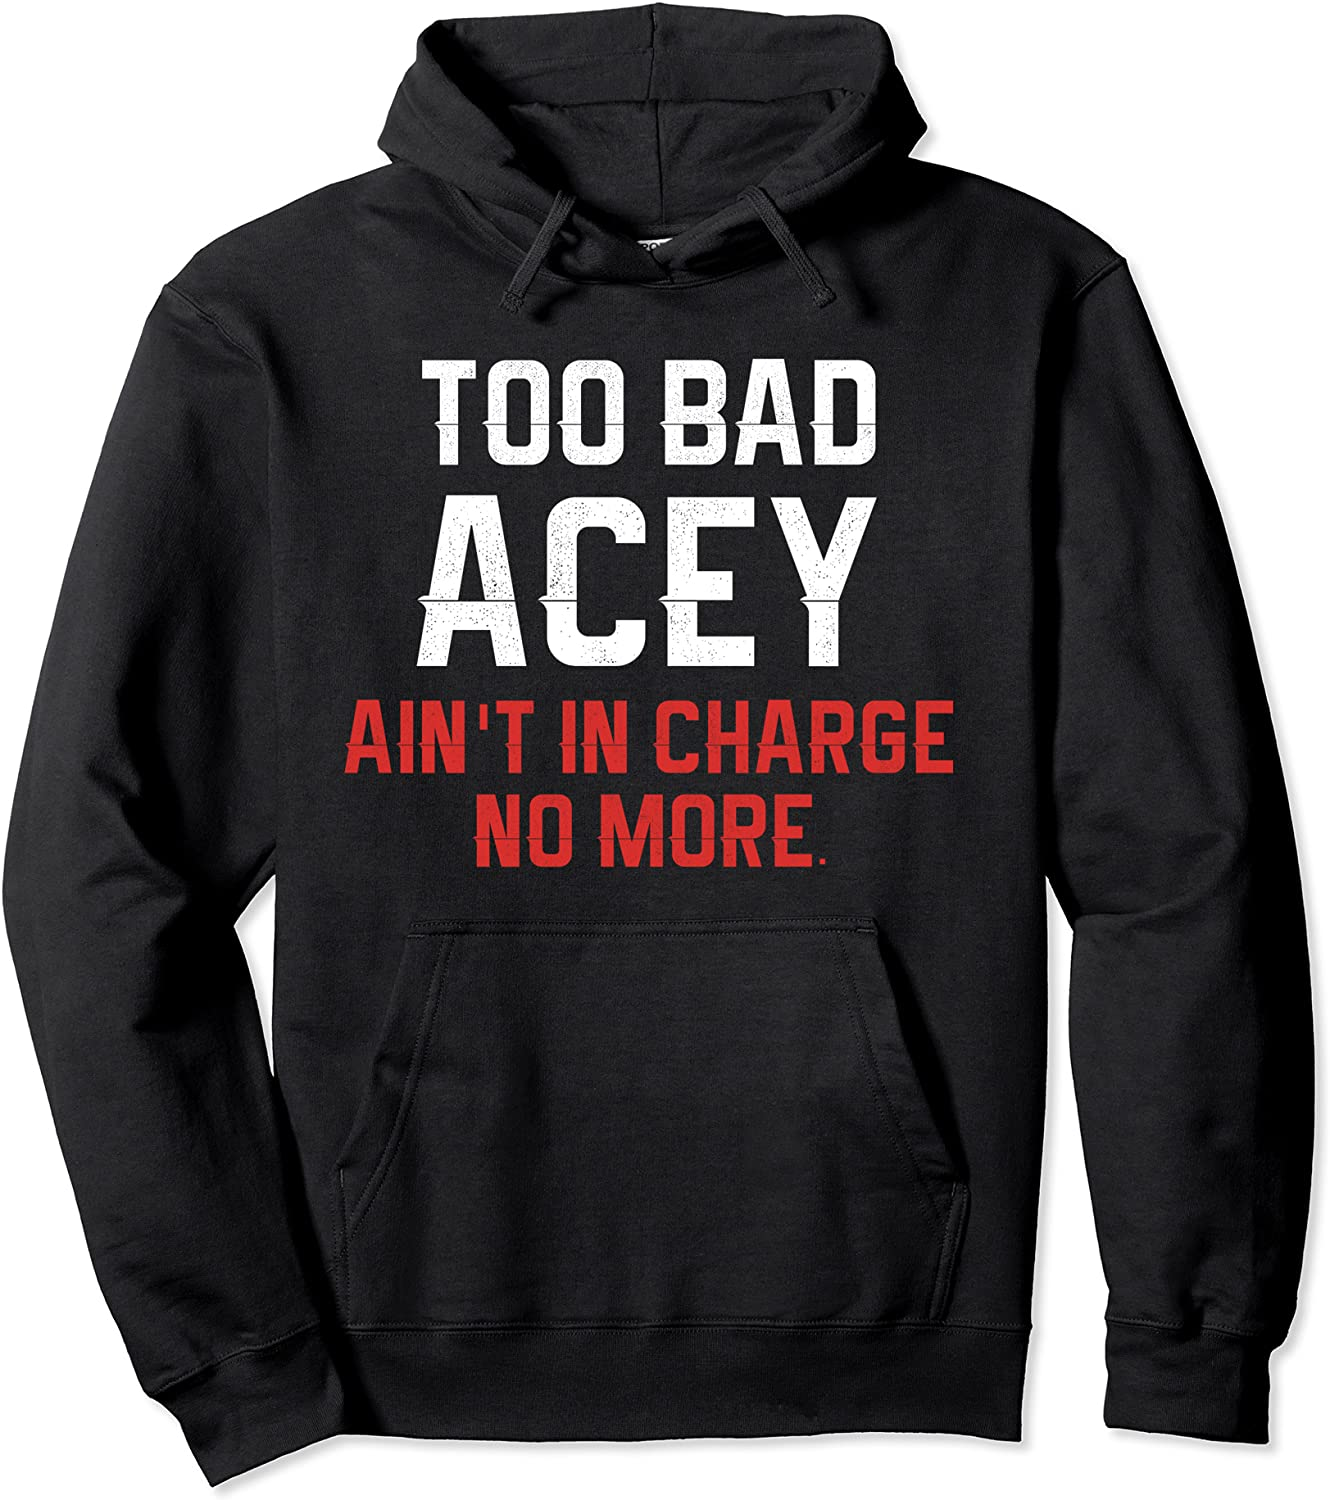 Too Bad Acey Ain't in Charge X-Mas Filty Animal Alone Home Pullover Hoodie